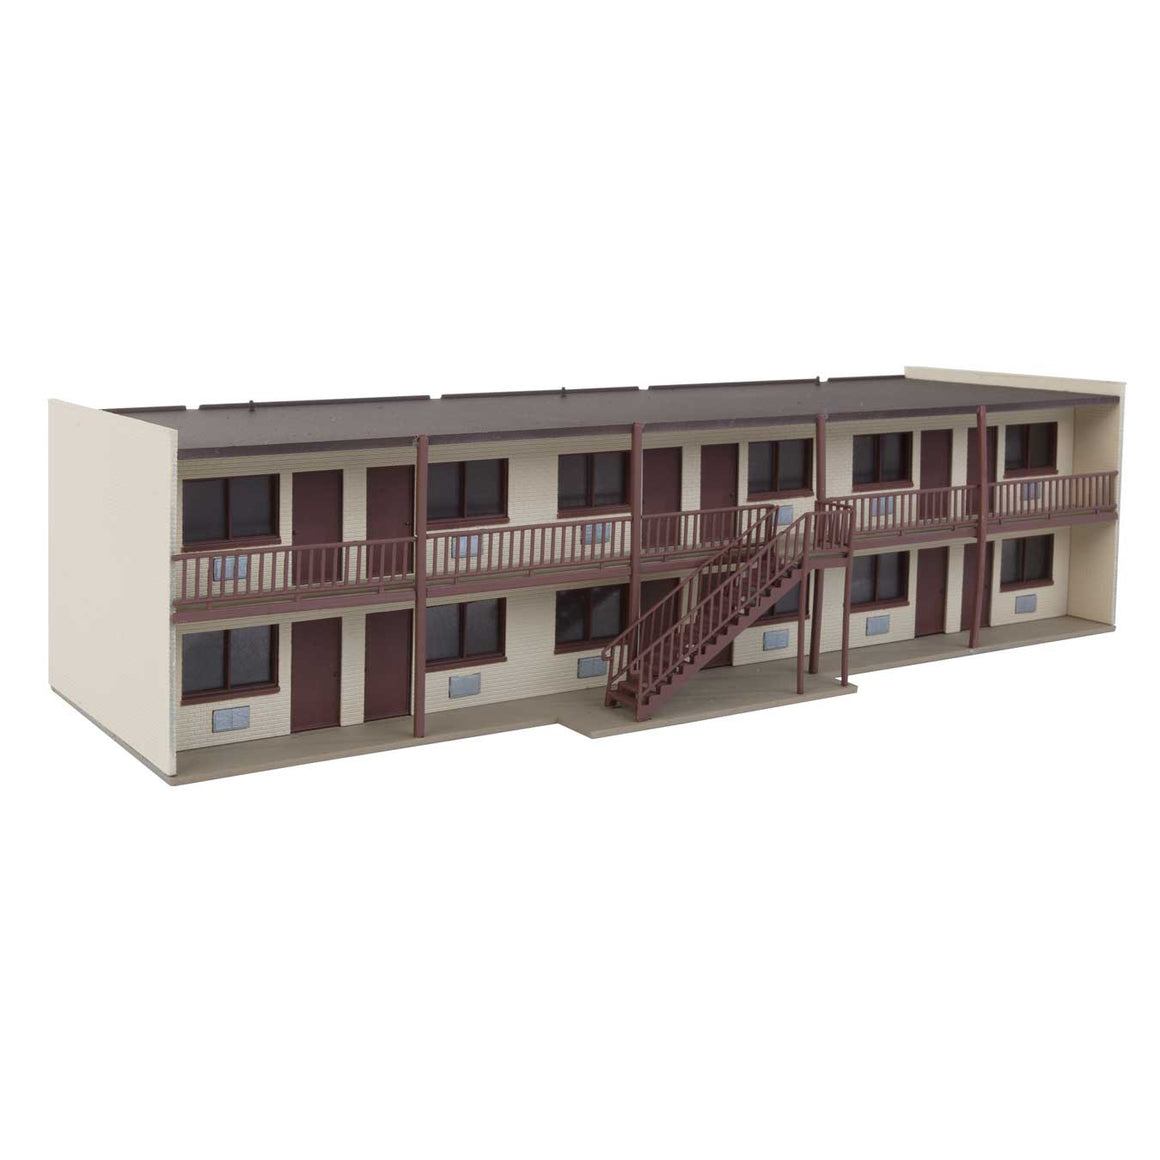 HO Scale: Vintage Motor Hotel with Office and Restaurant - Kit